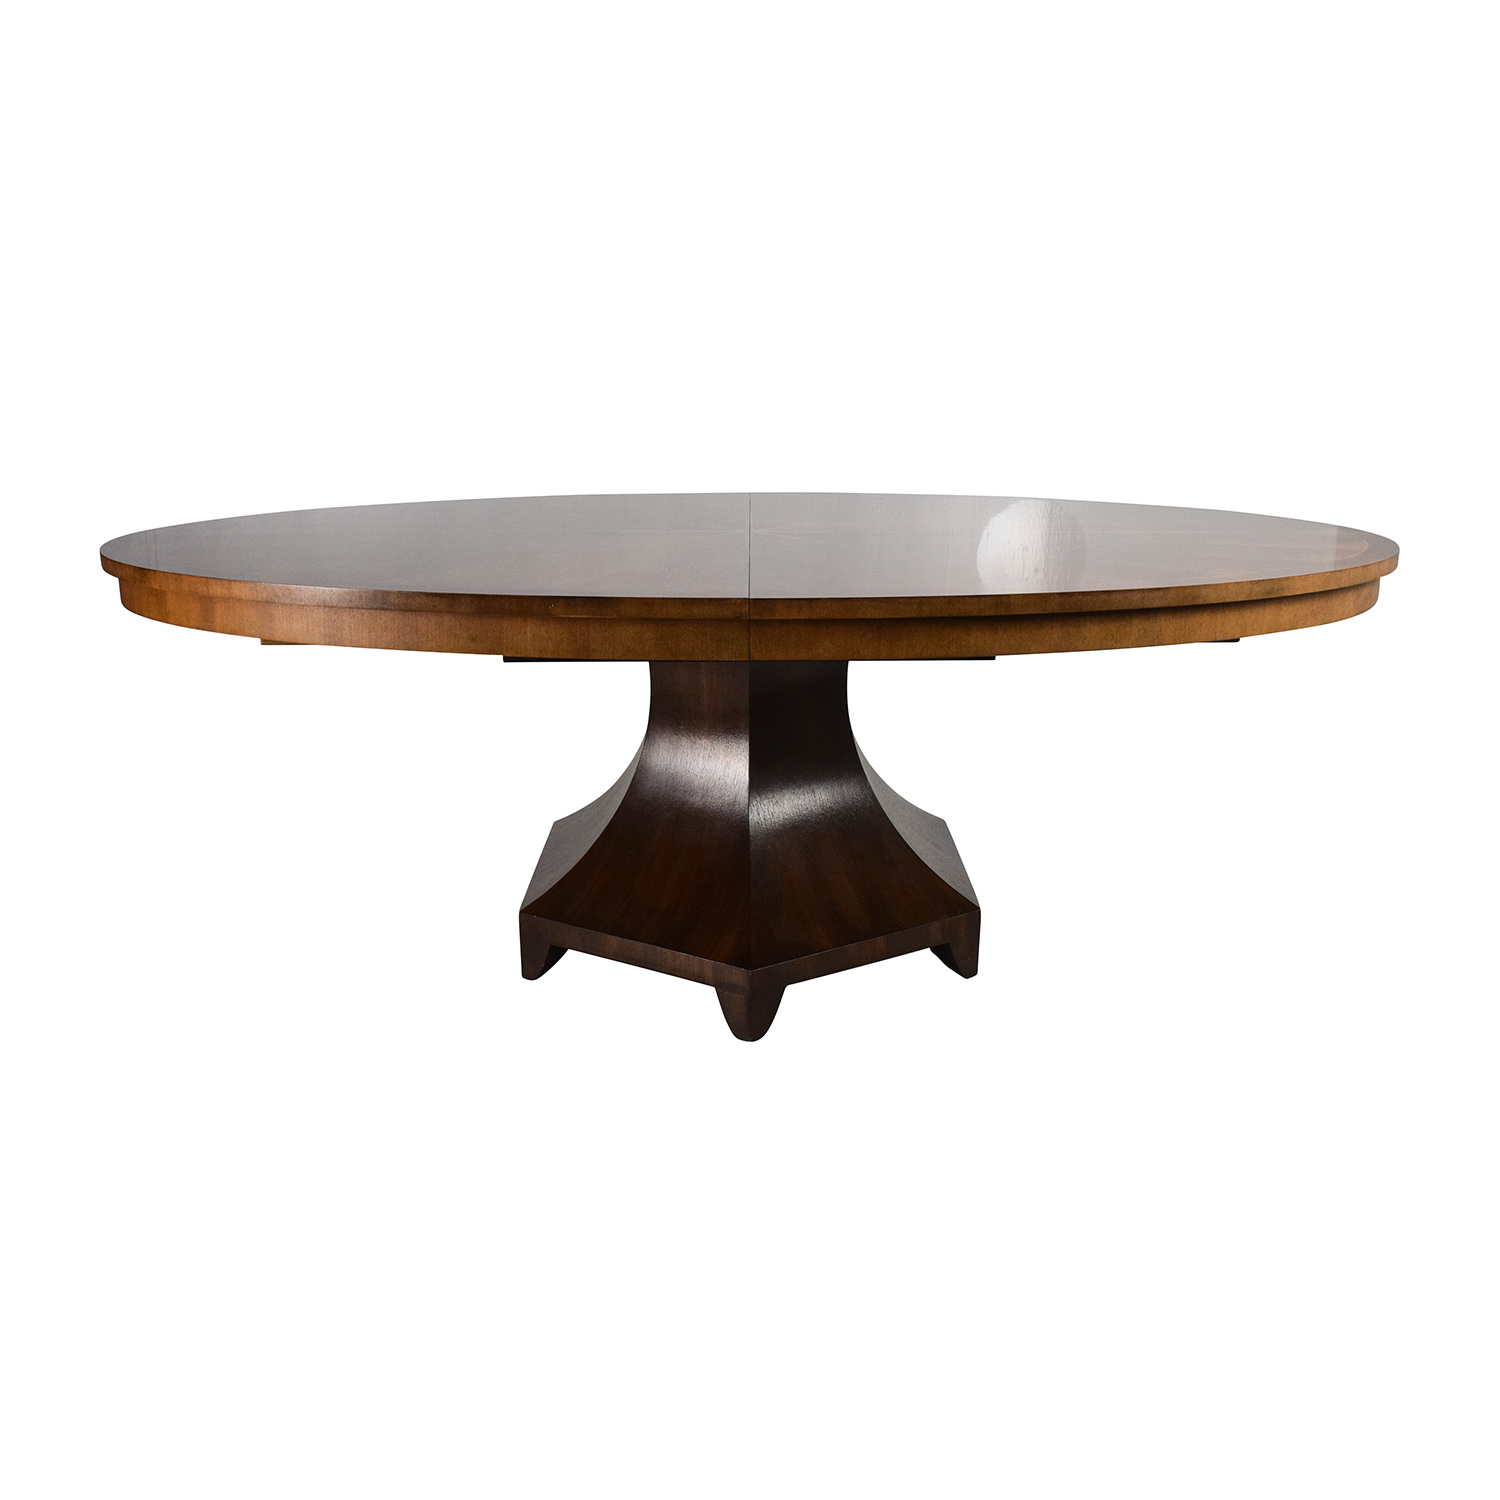 67 OFF Henredon Henredon Celestial Oval Table Designed by Barbara